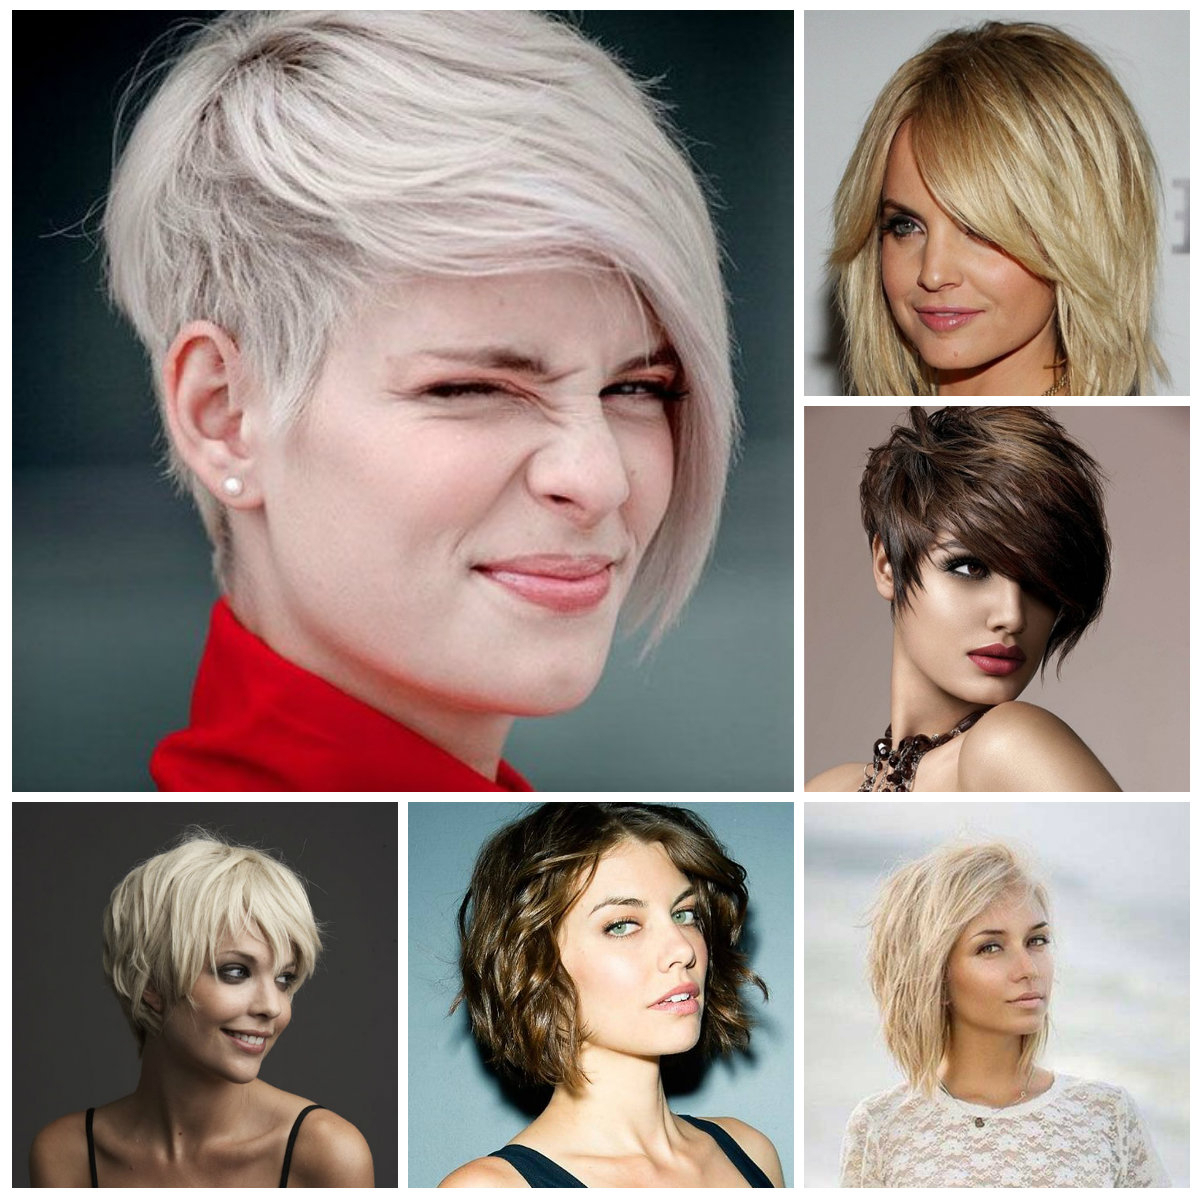 Trendy Short Haircuts – Trendy Hairstyles 2019 For Long, Medium And Throughout Trendy Short Hairstyles (View 20 of 25)